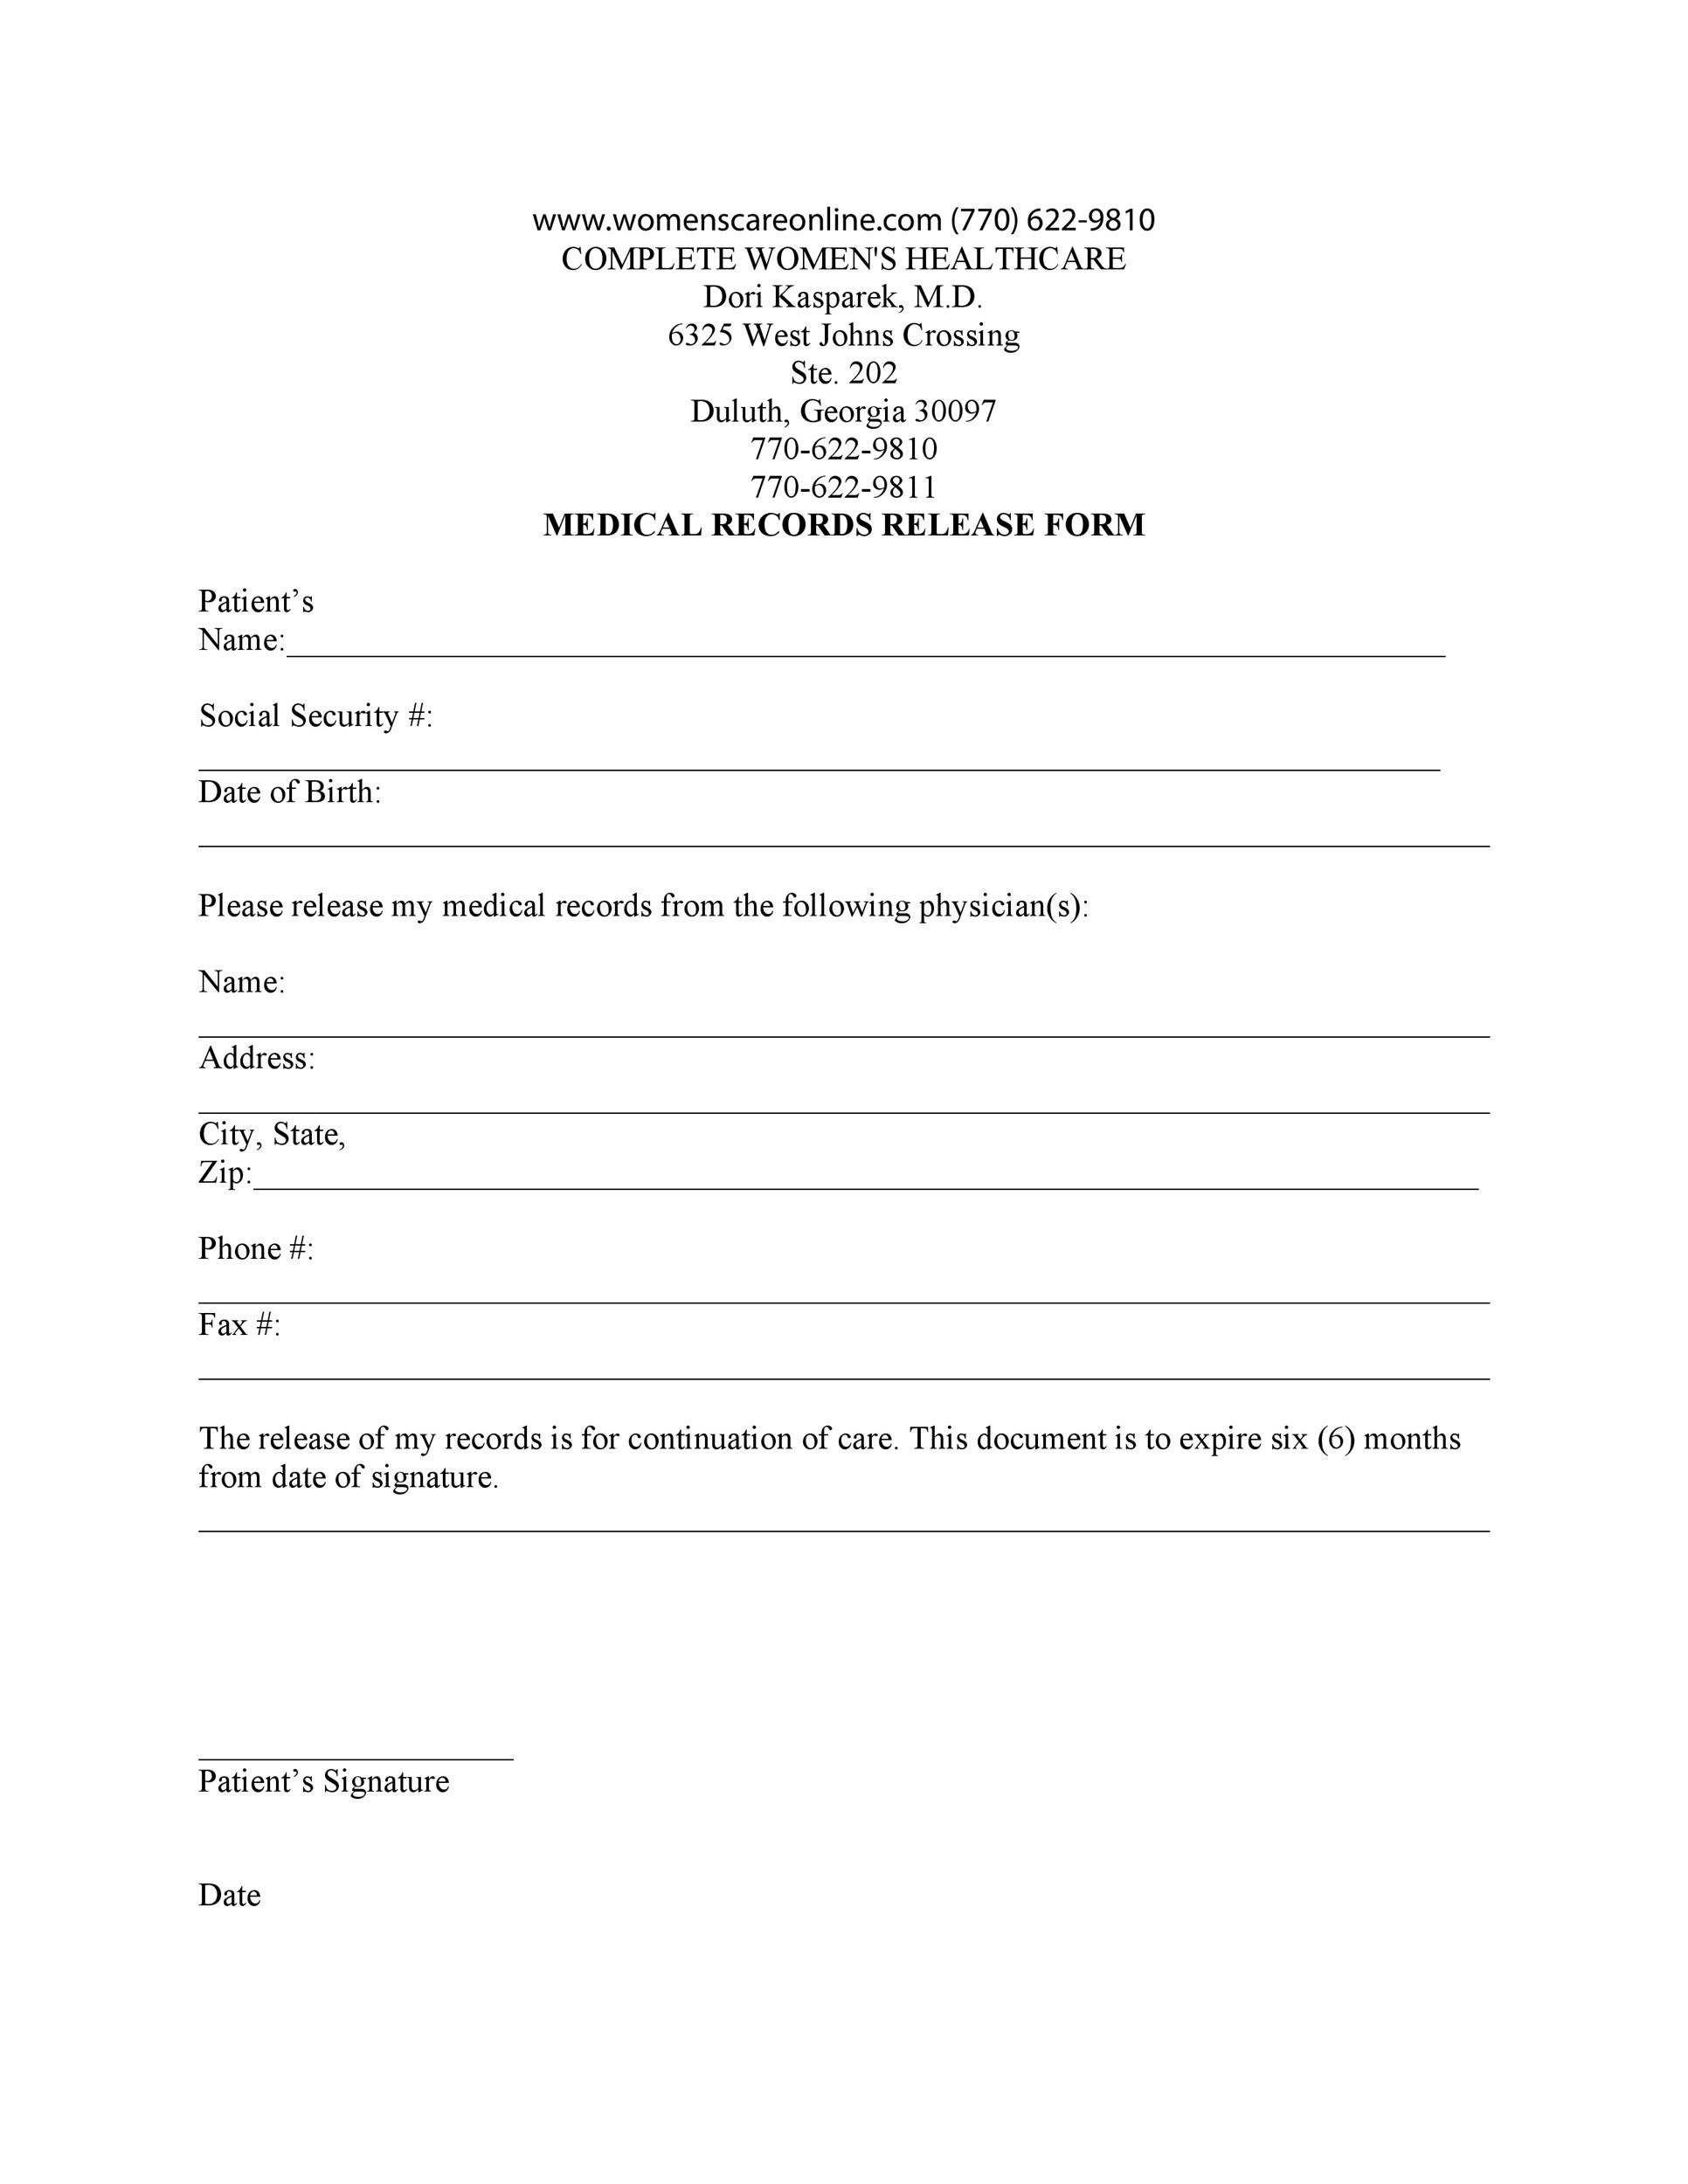 Free Medical Release Form 28